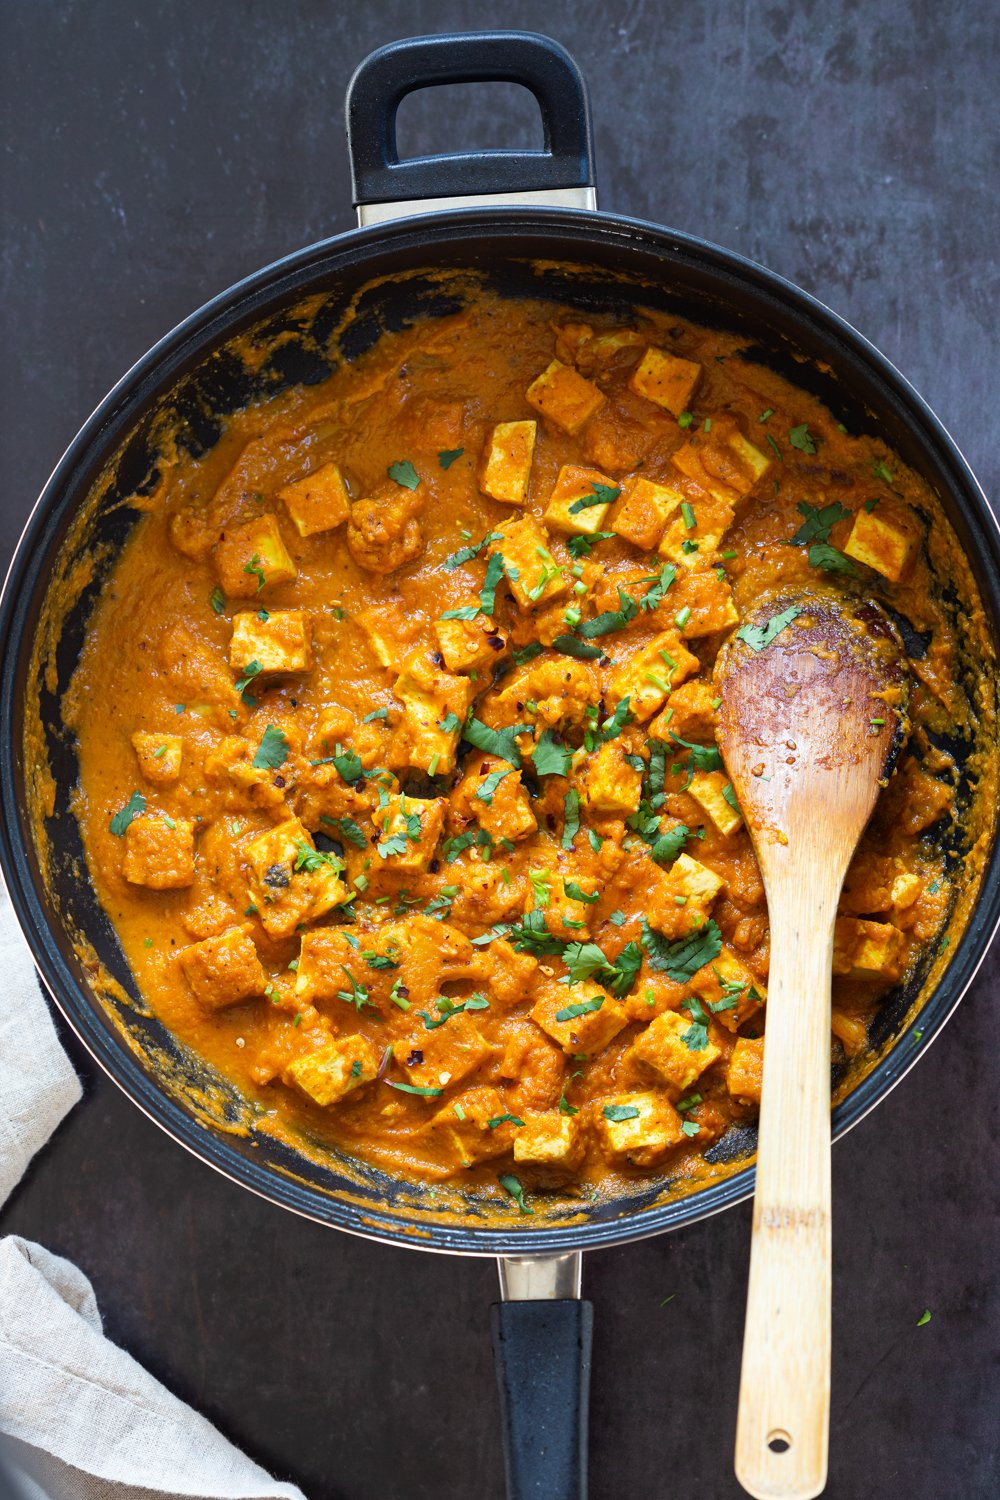 Tofu and Cauliflower in Indian Kolhapuri Sauce in a Black skillet